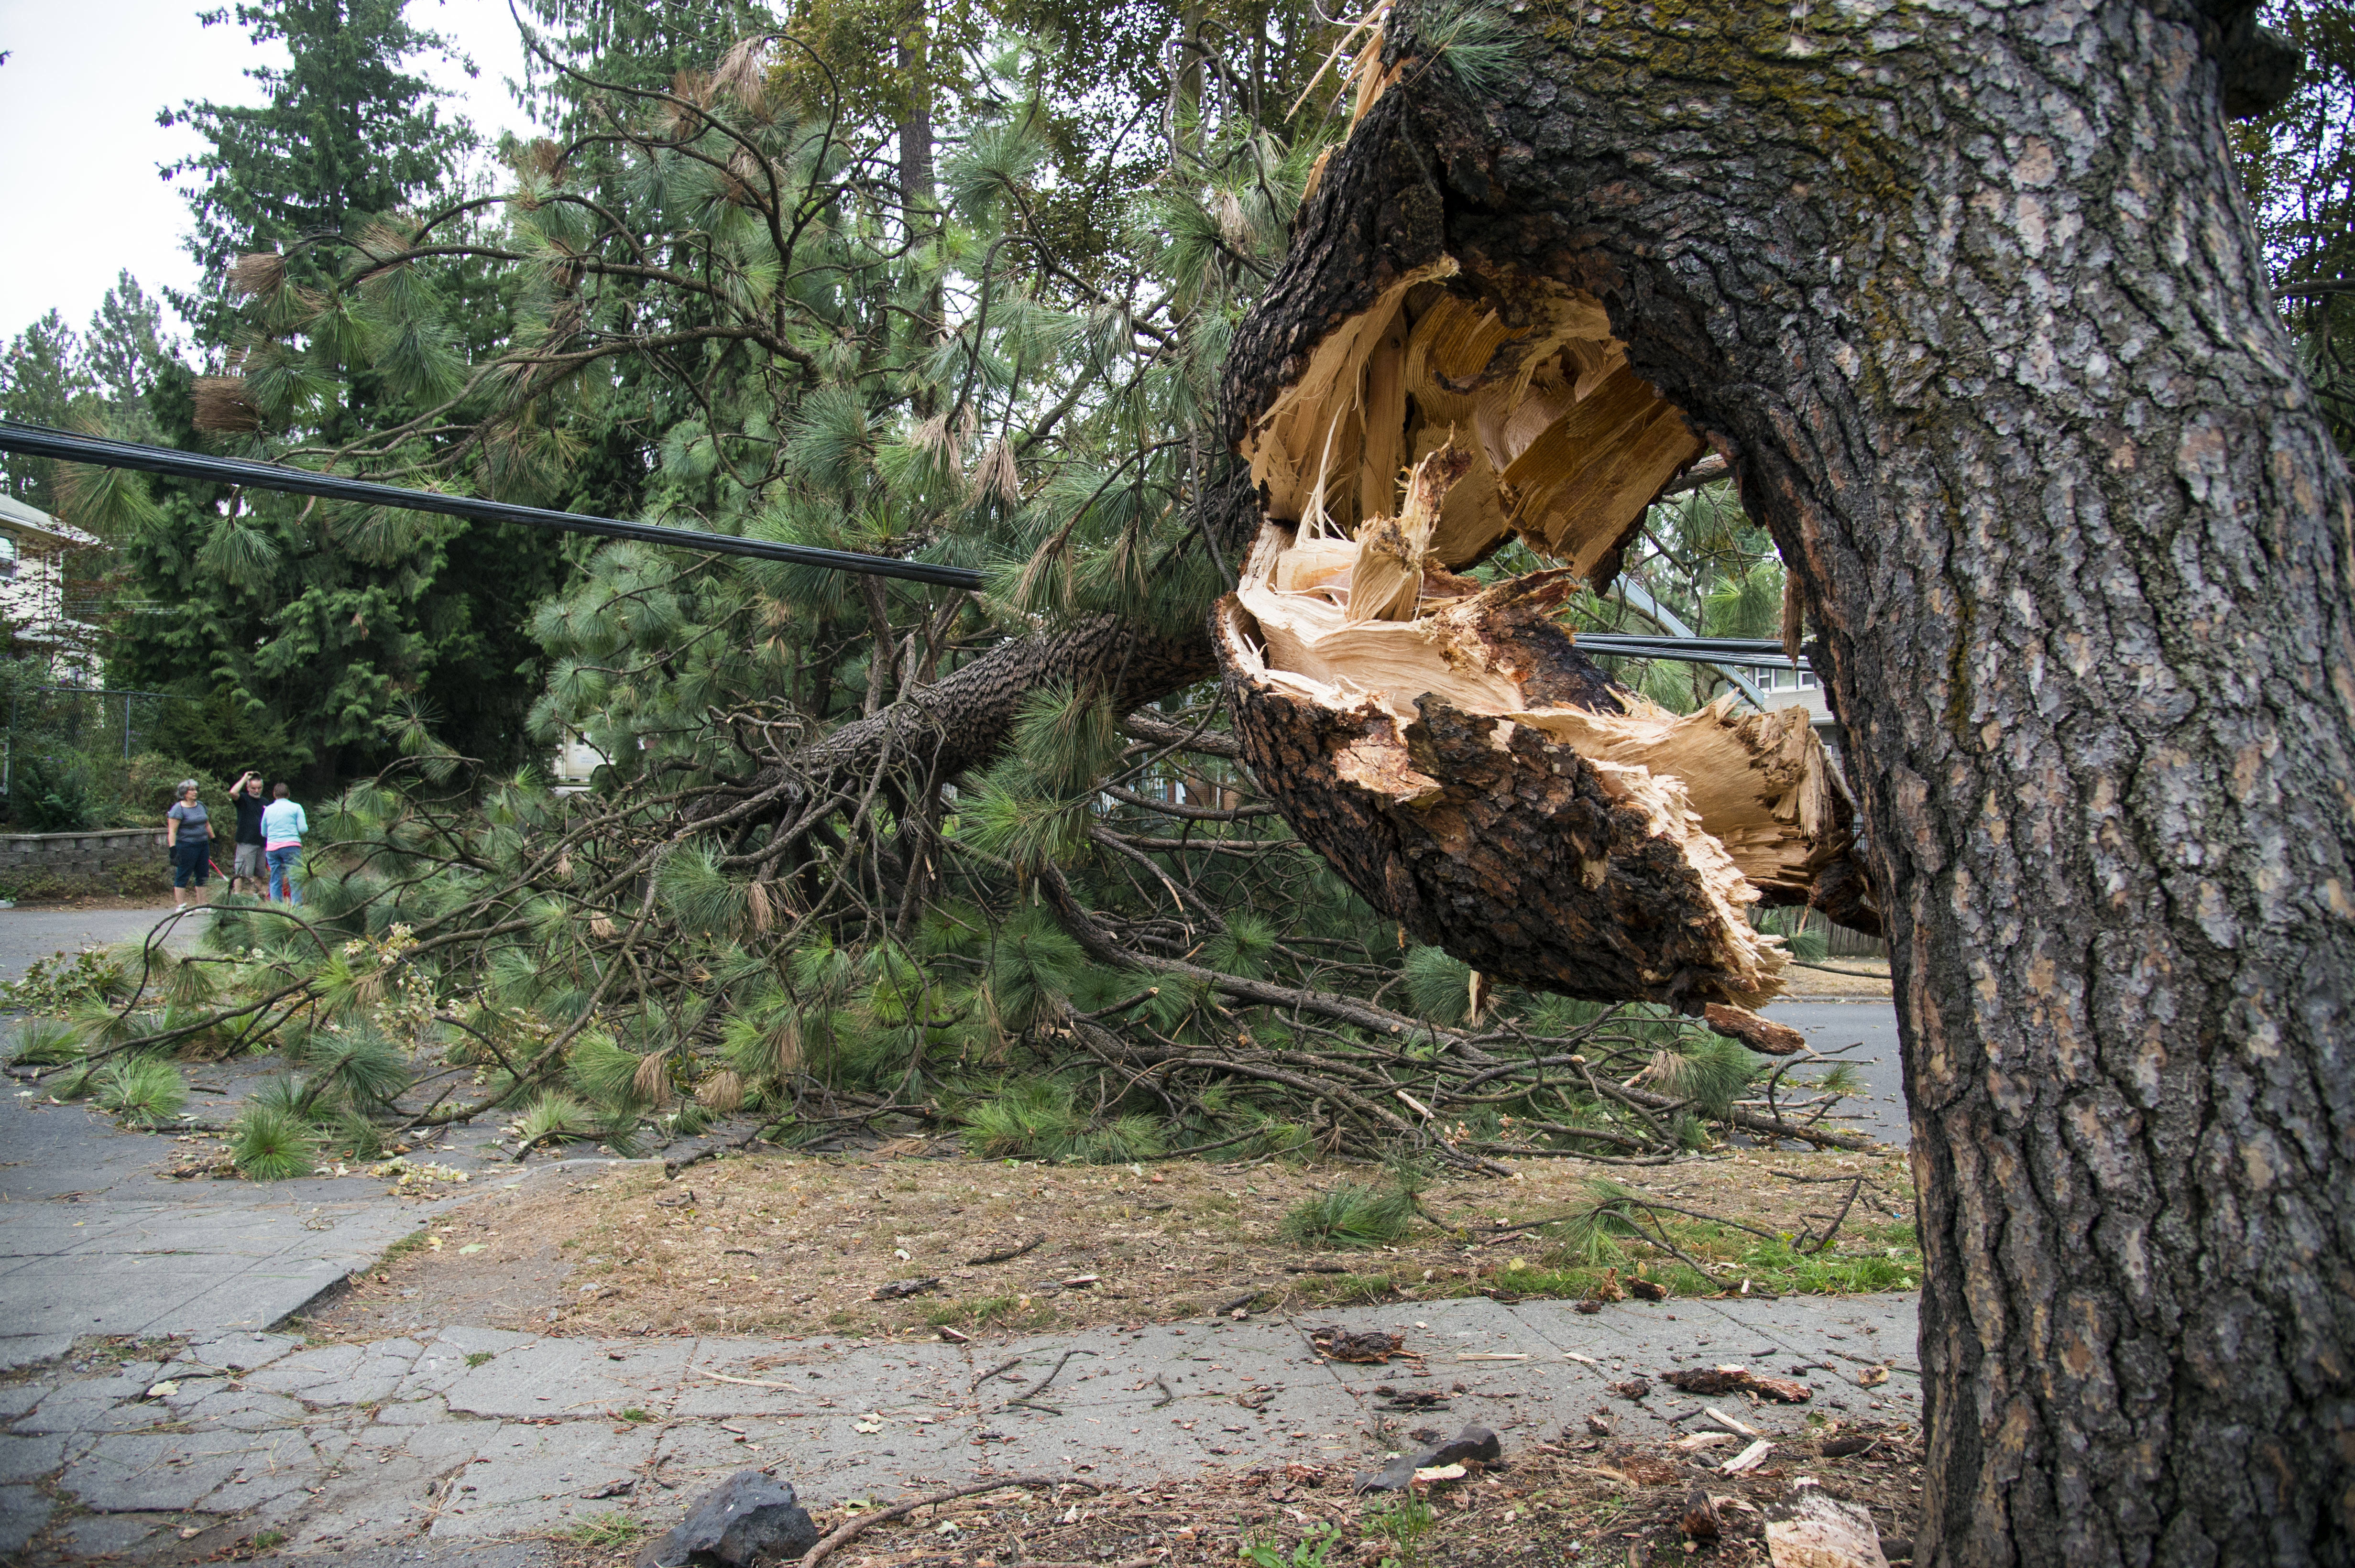 High winds fan flames, cause power outages | The Spokesman-Review